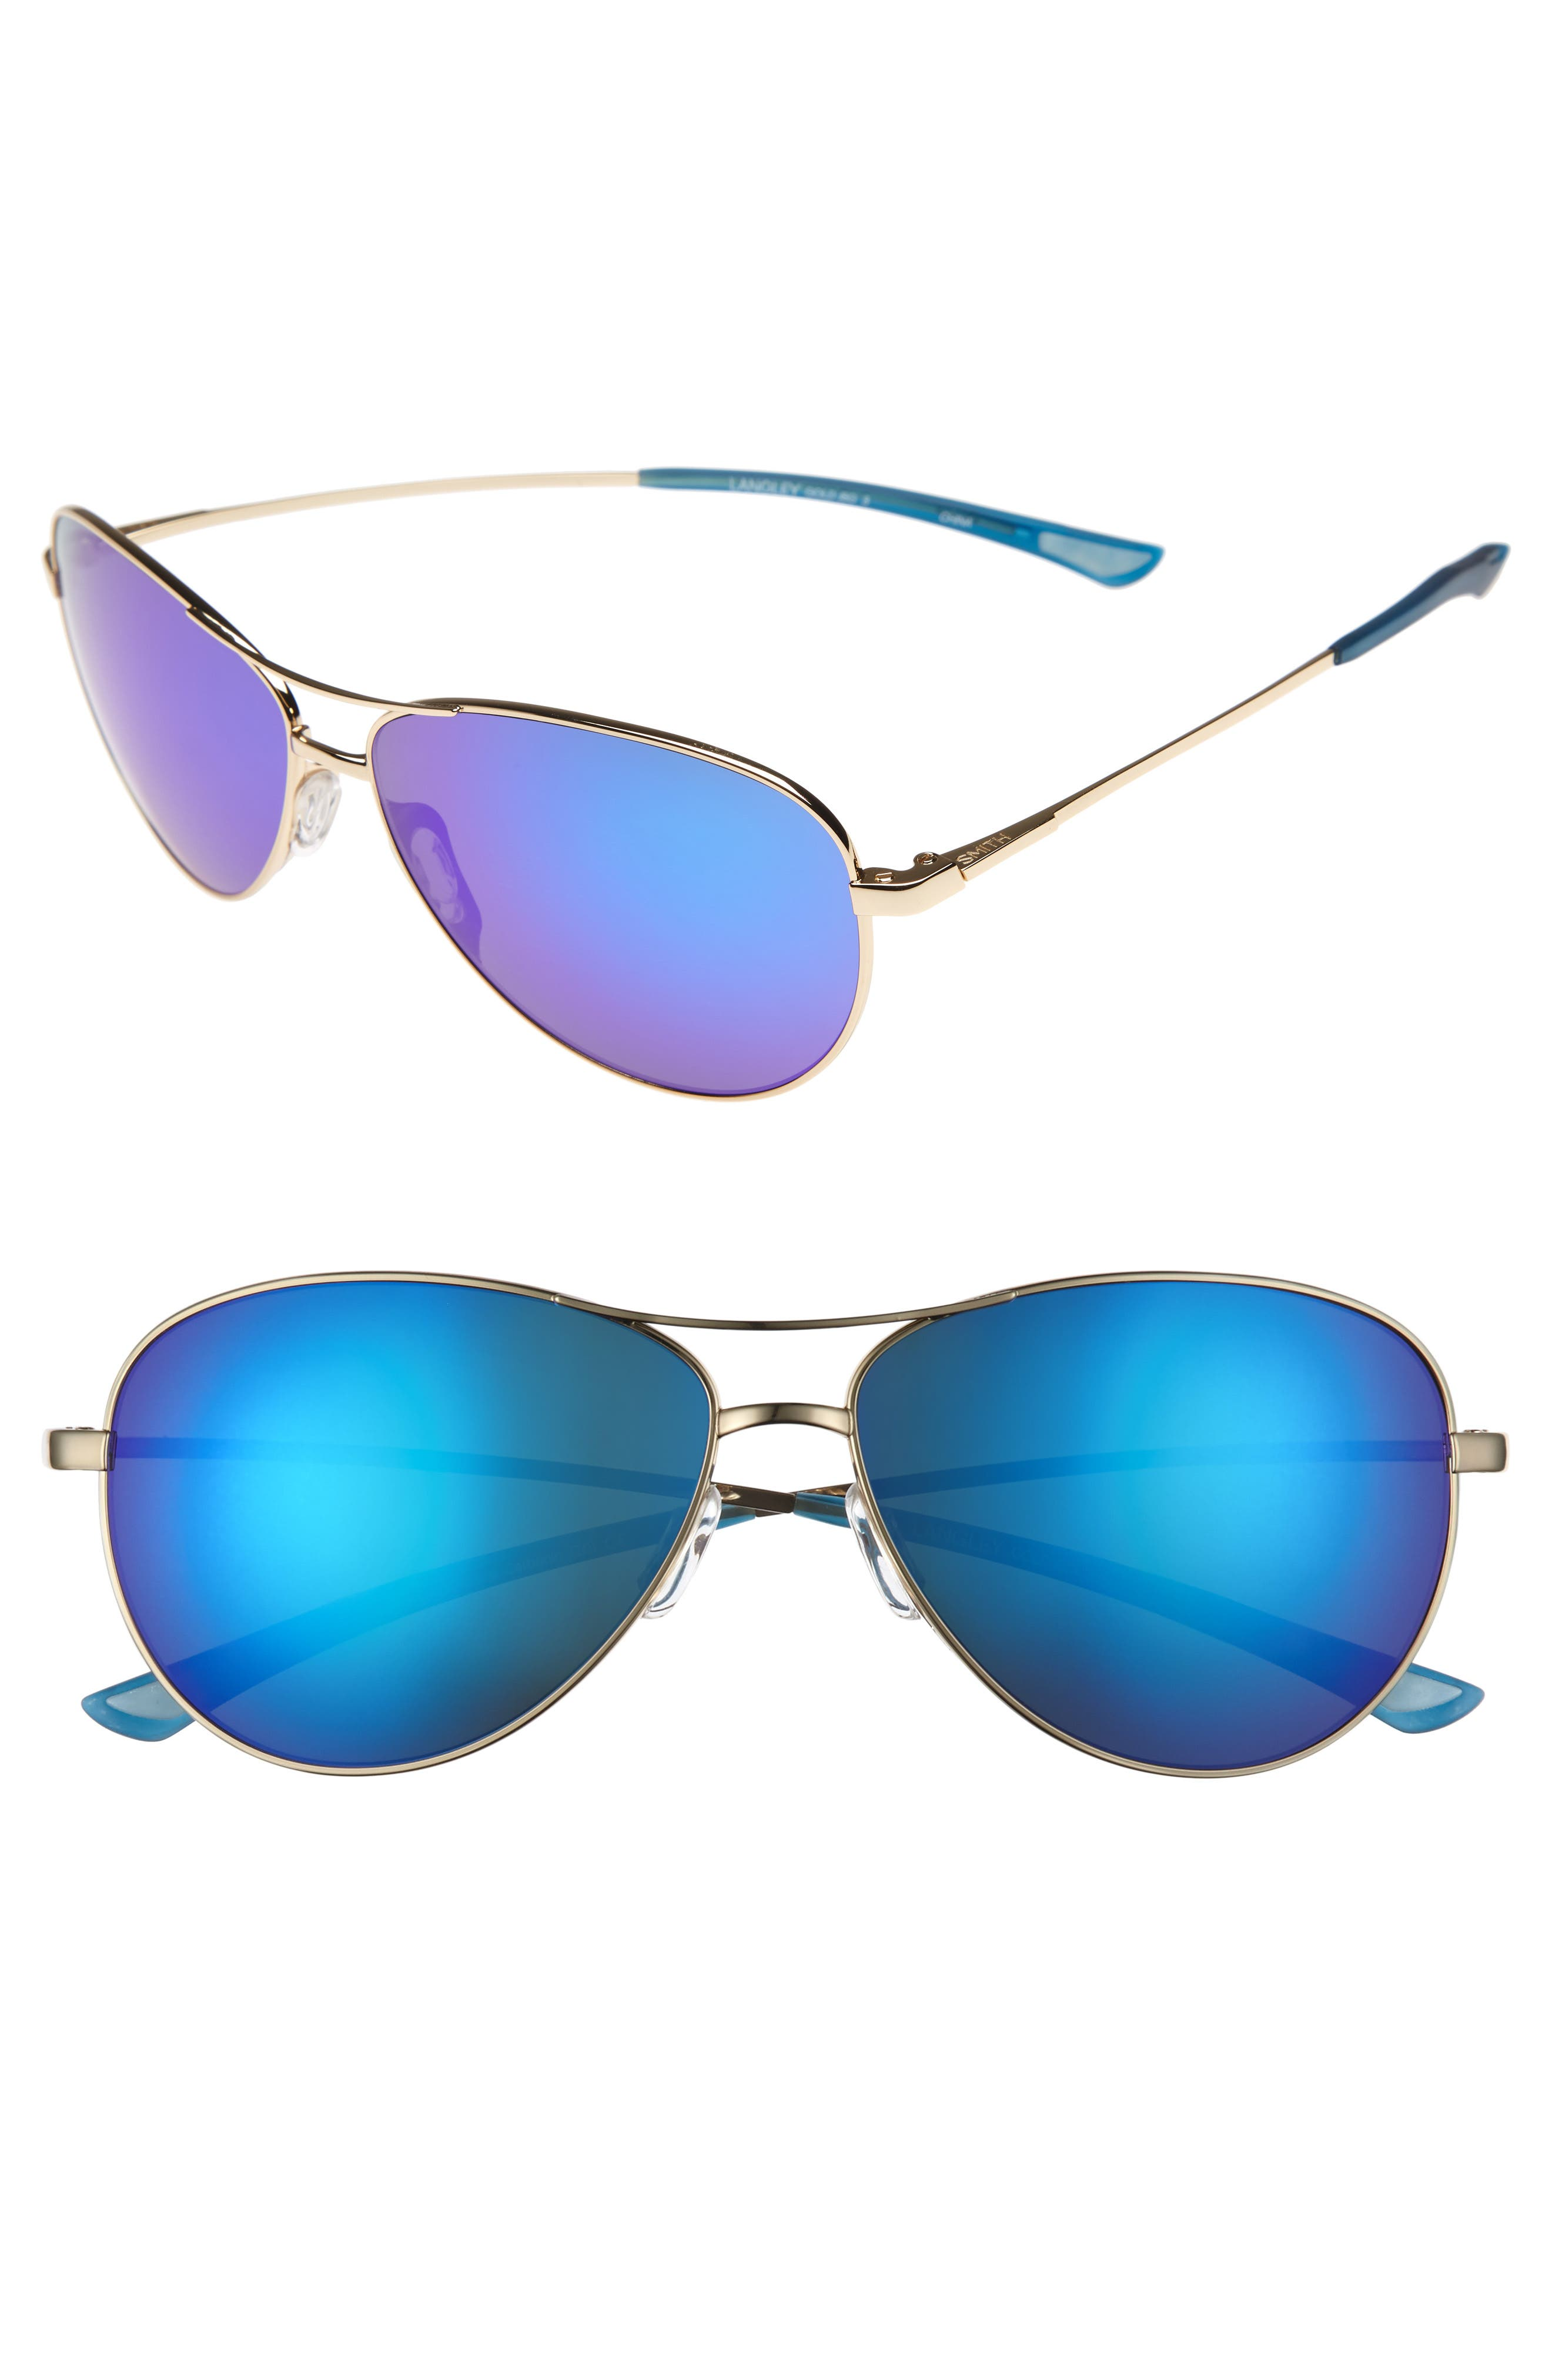 'LANGLEY' 60MM AVIATOR SUNGLASSES - GOLD/ BLUE